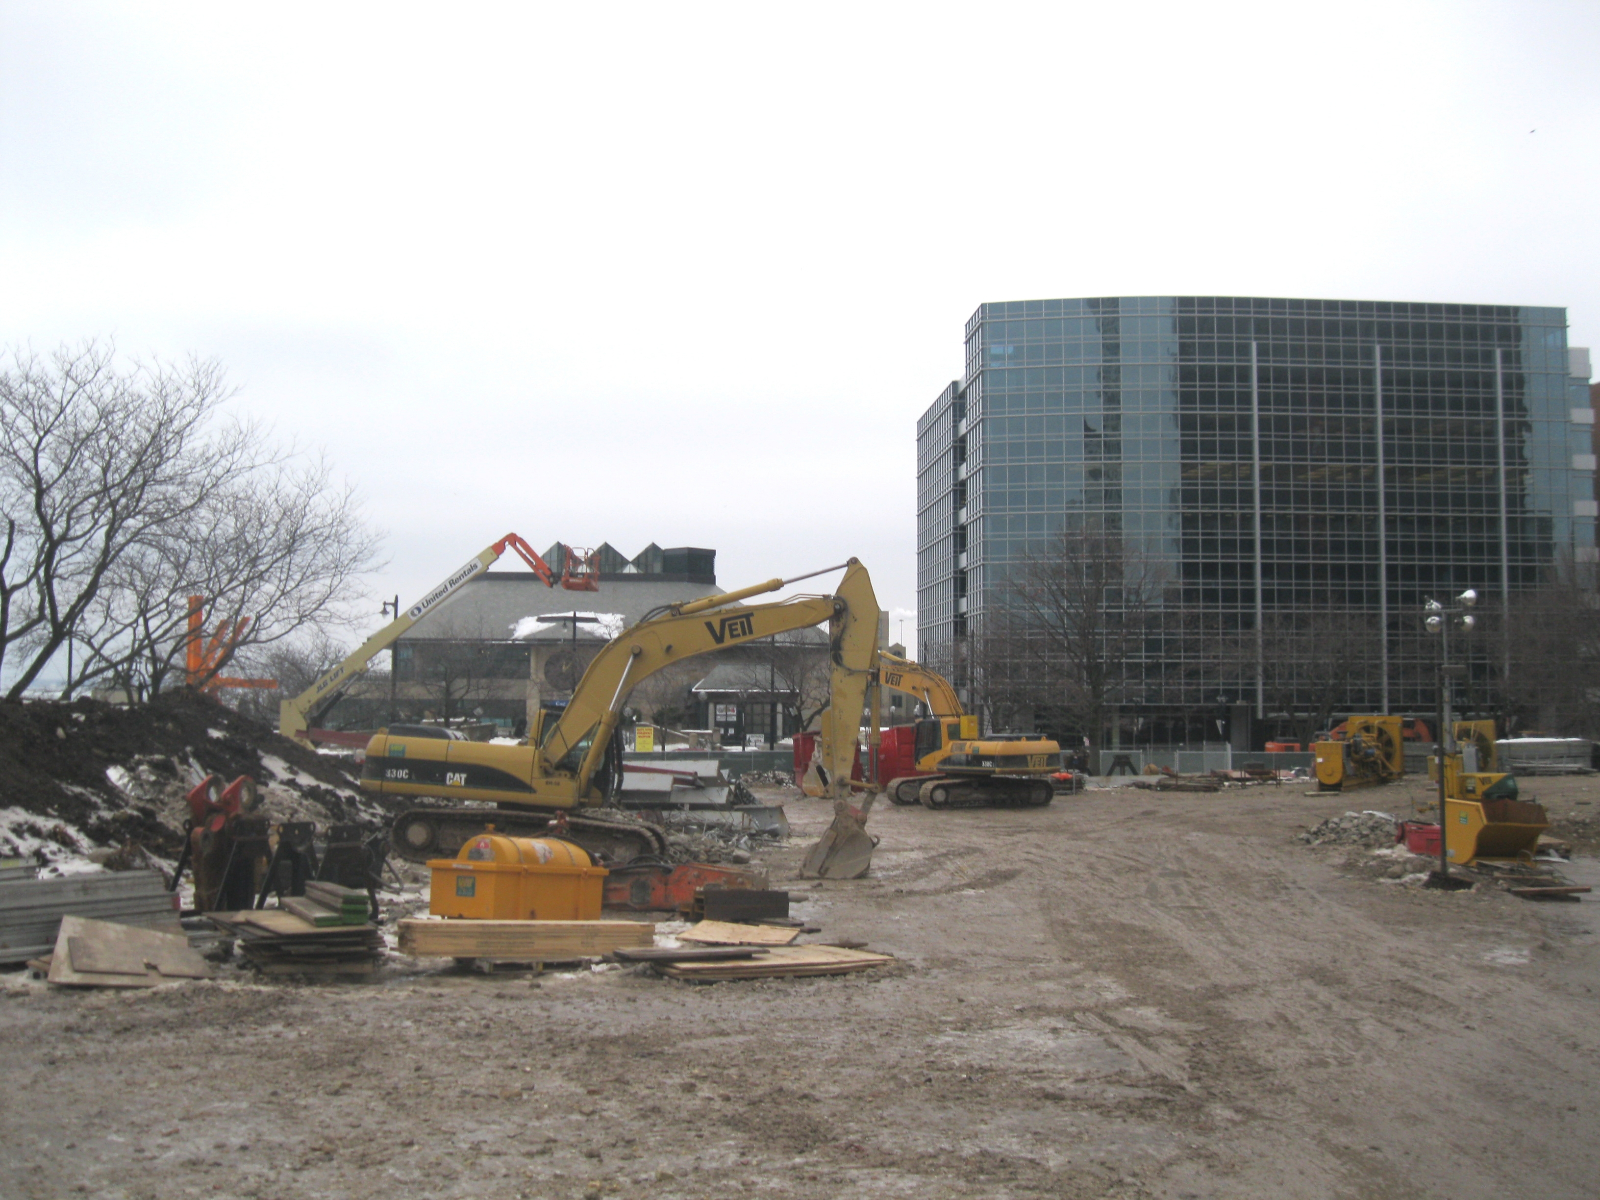 The land is being cleared in preparation for construction.